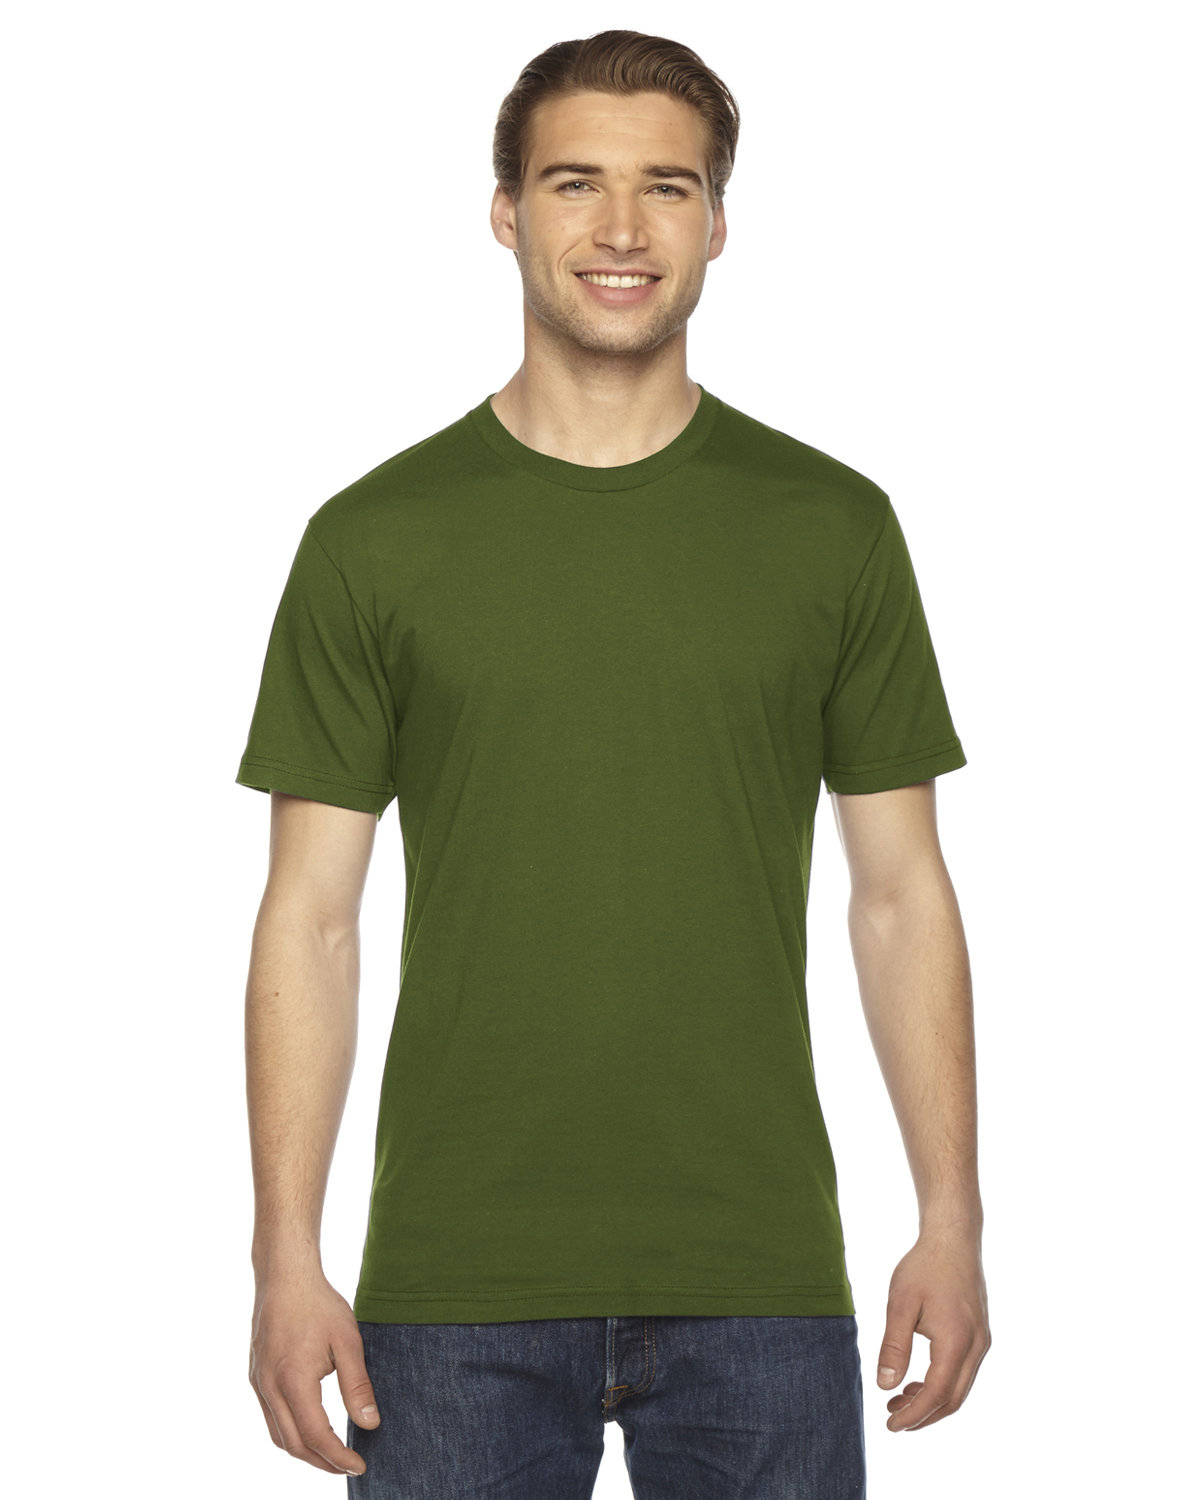 American Apparel Unisex Fine Jersey USA Made T-Shirt OLIVE